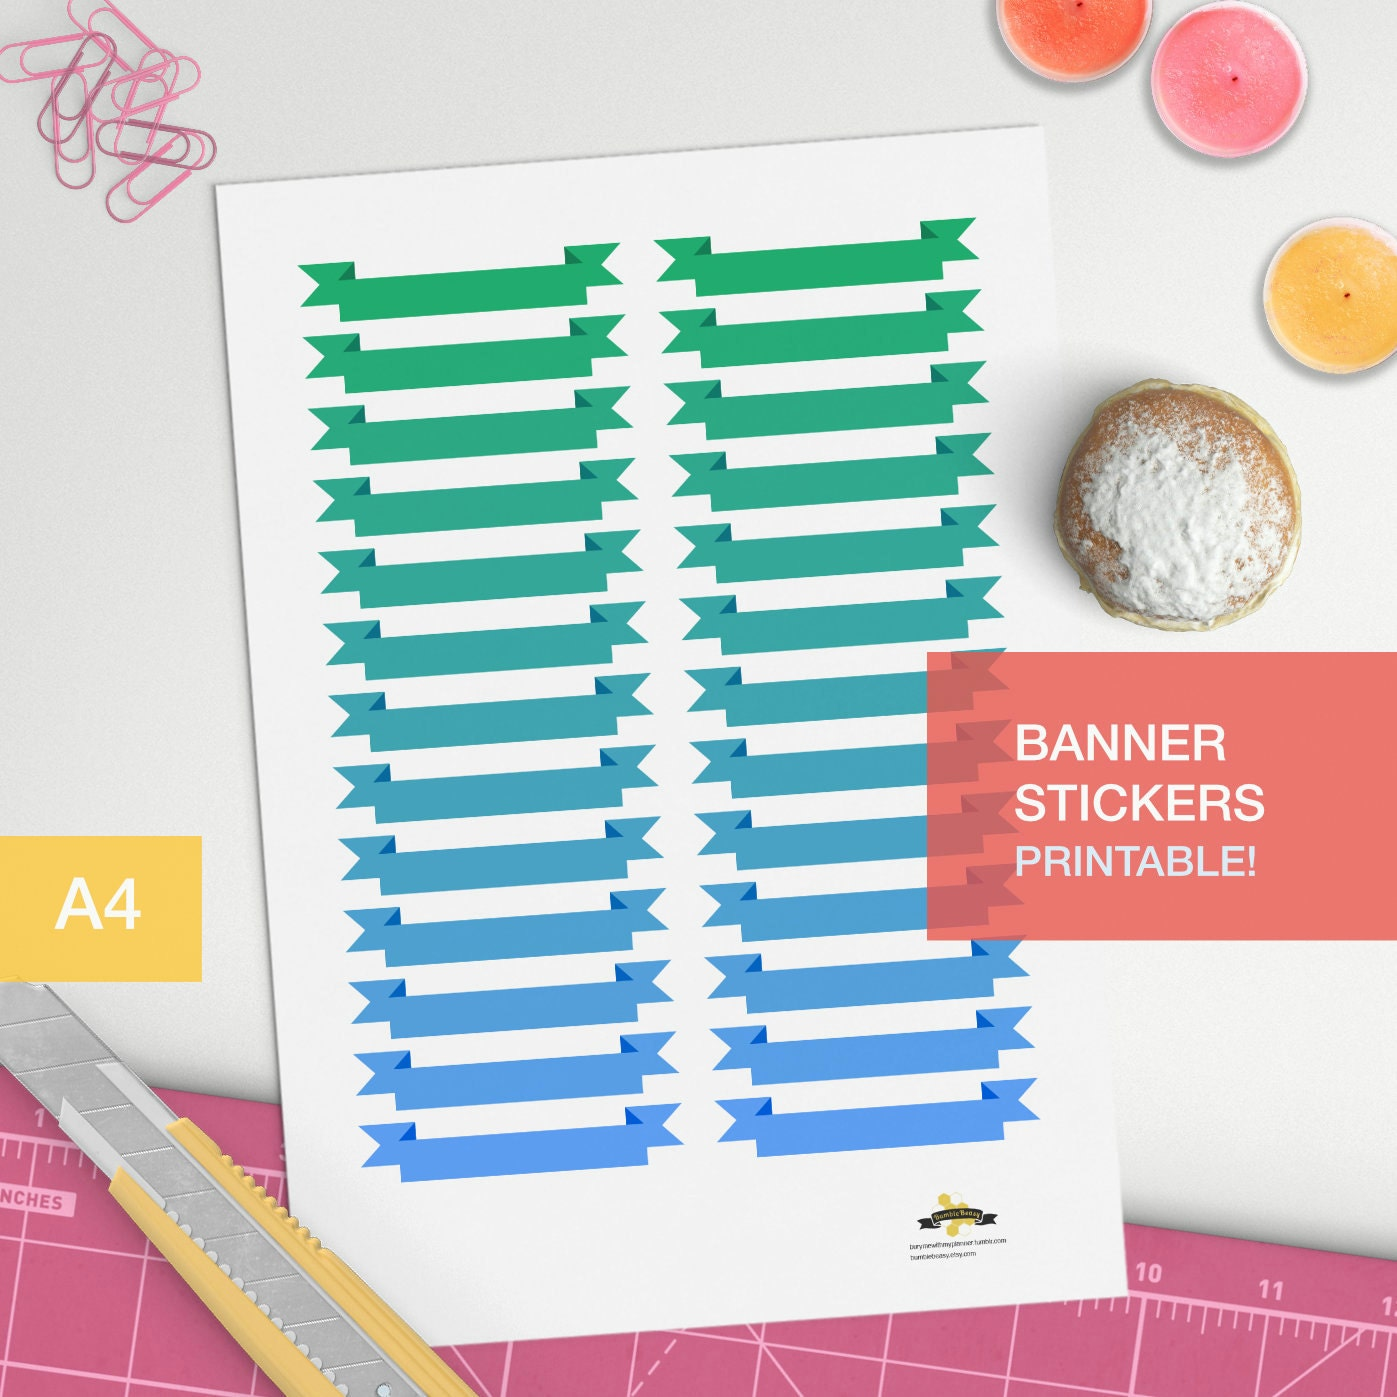 Banner stickers for your planner decorating printable for Planner decorating blogs